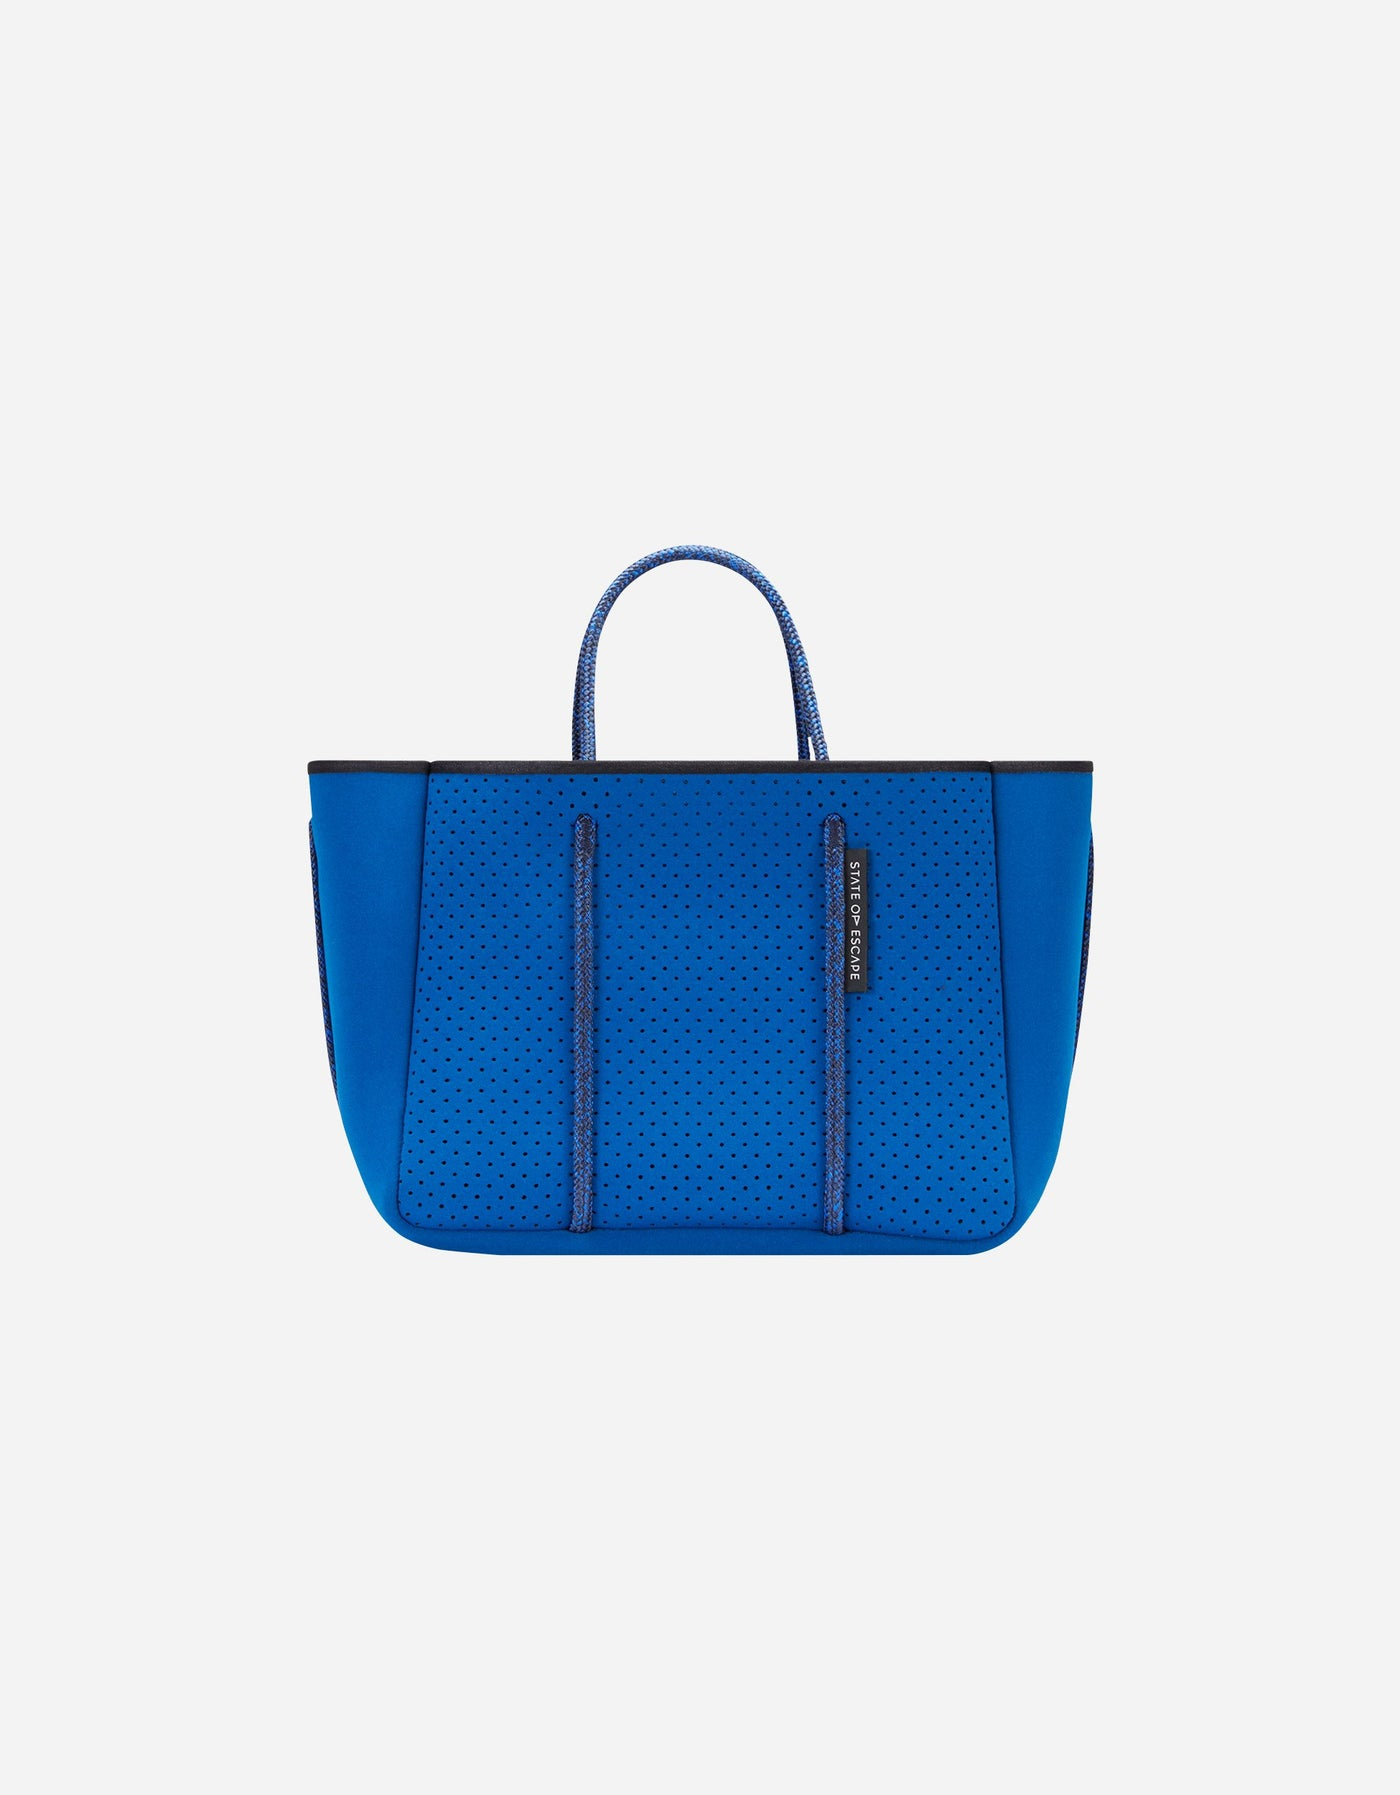 Petite escape neoprene tote bag in marine